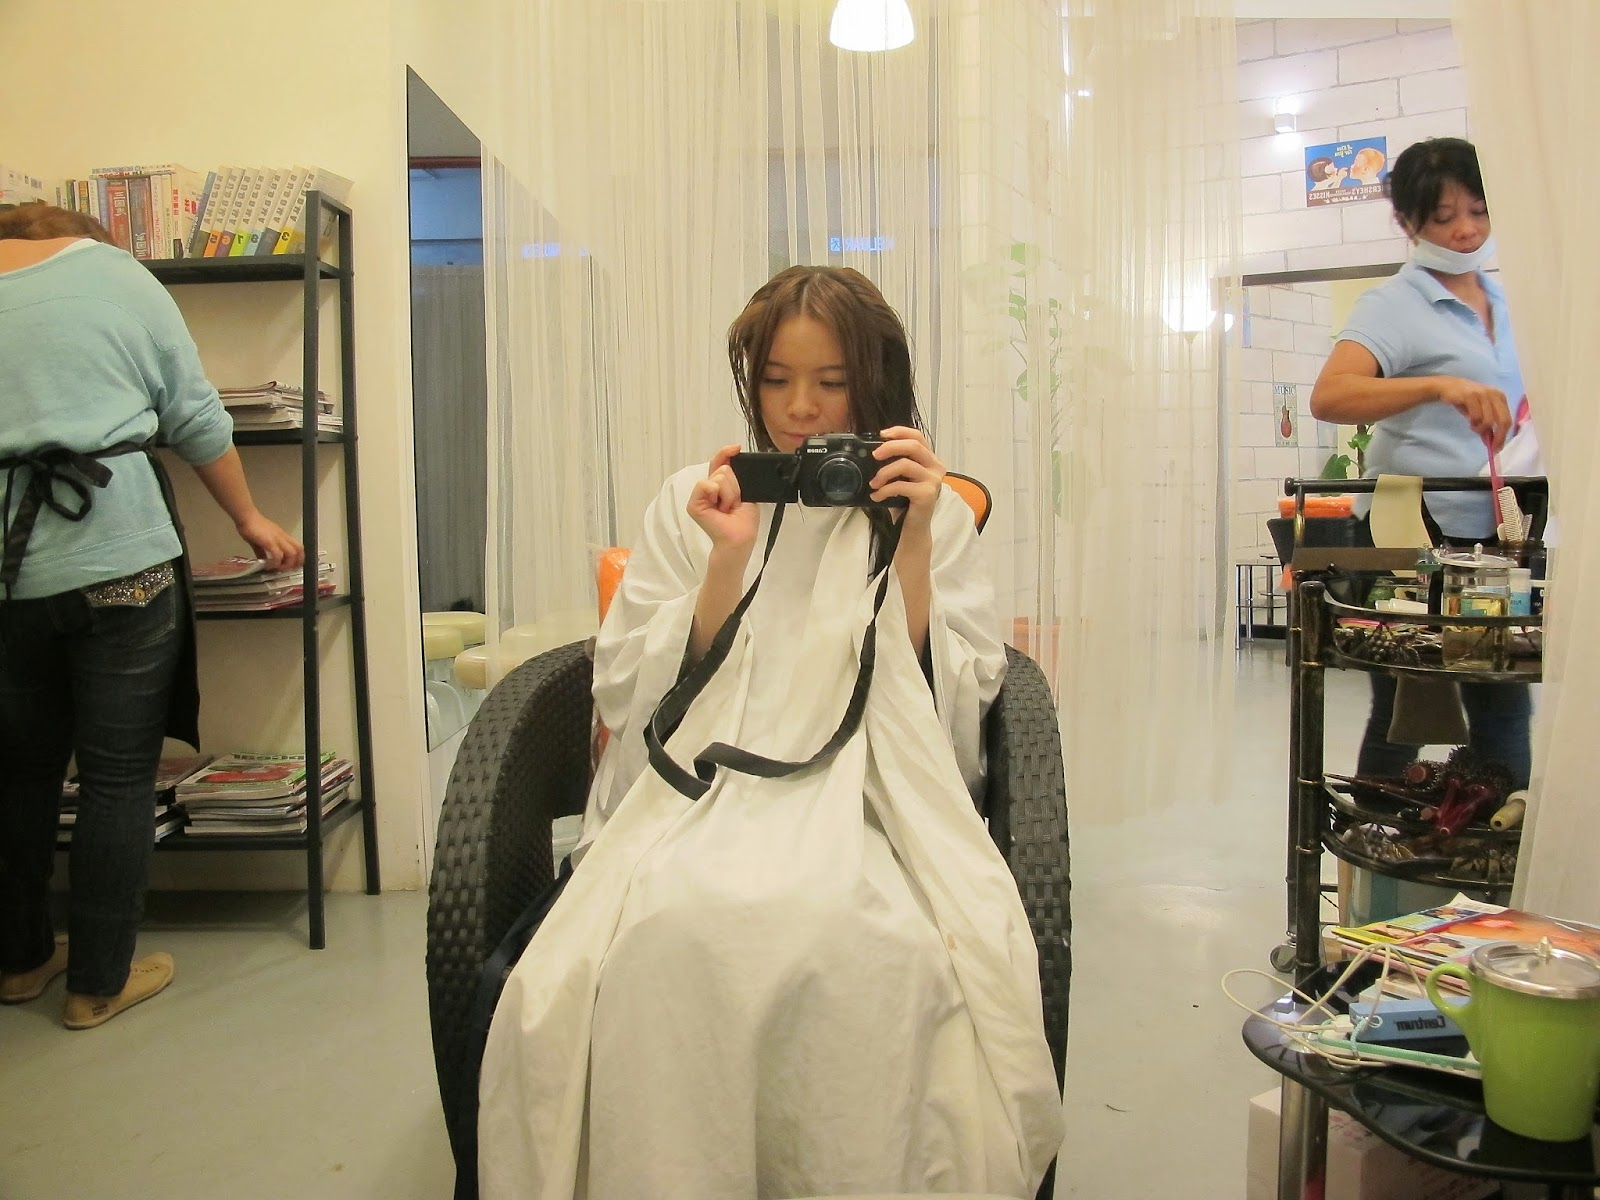 girl getting haircut